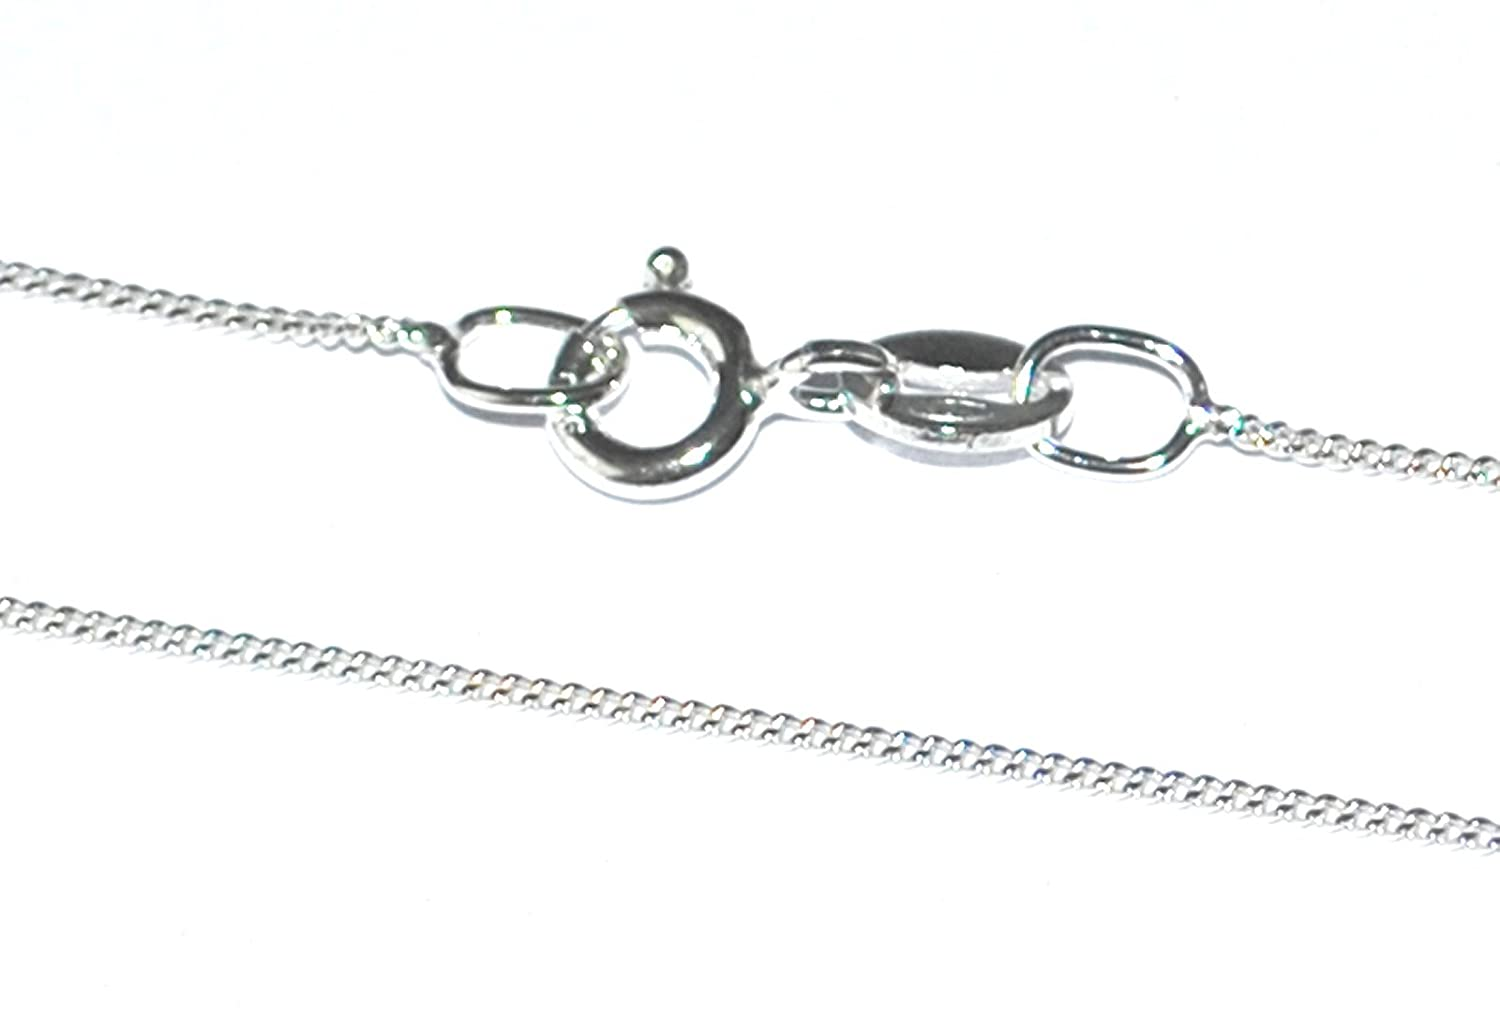 Markylis - Sterling Silver Curb Chain Necklace - 16, 18, 20, 24, 26, 28, 30, 32 inch - UK SELLER